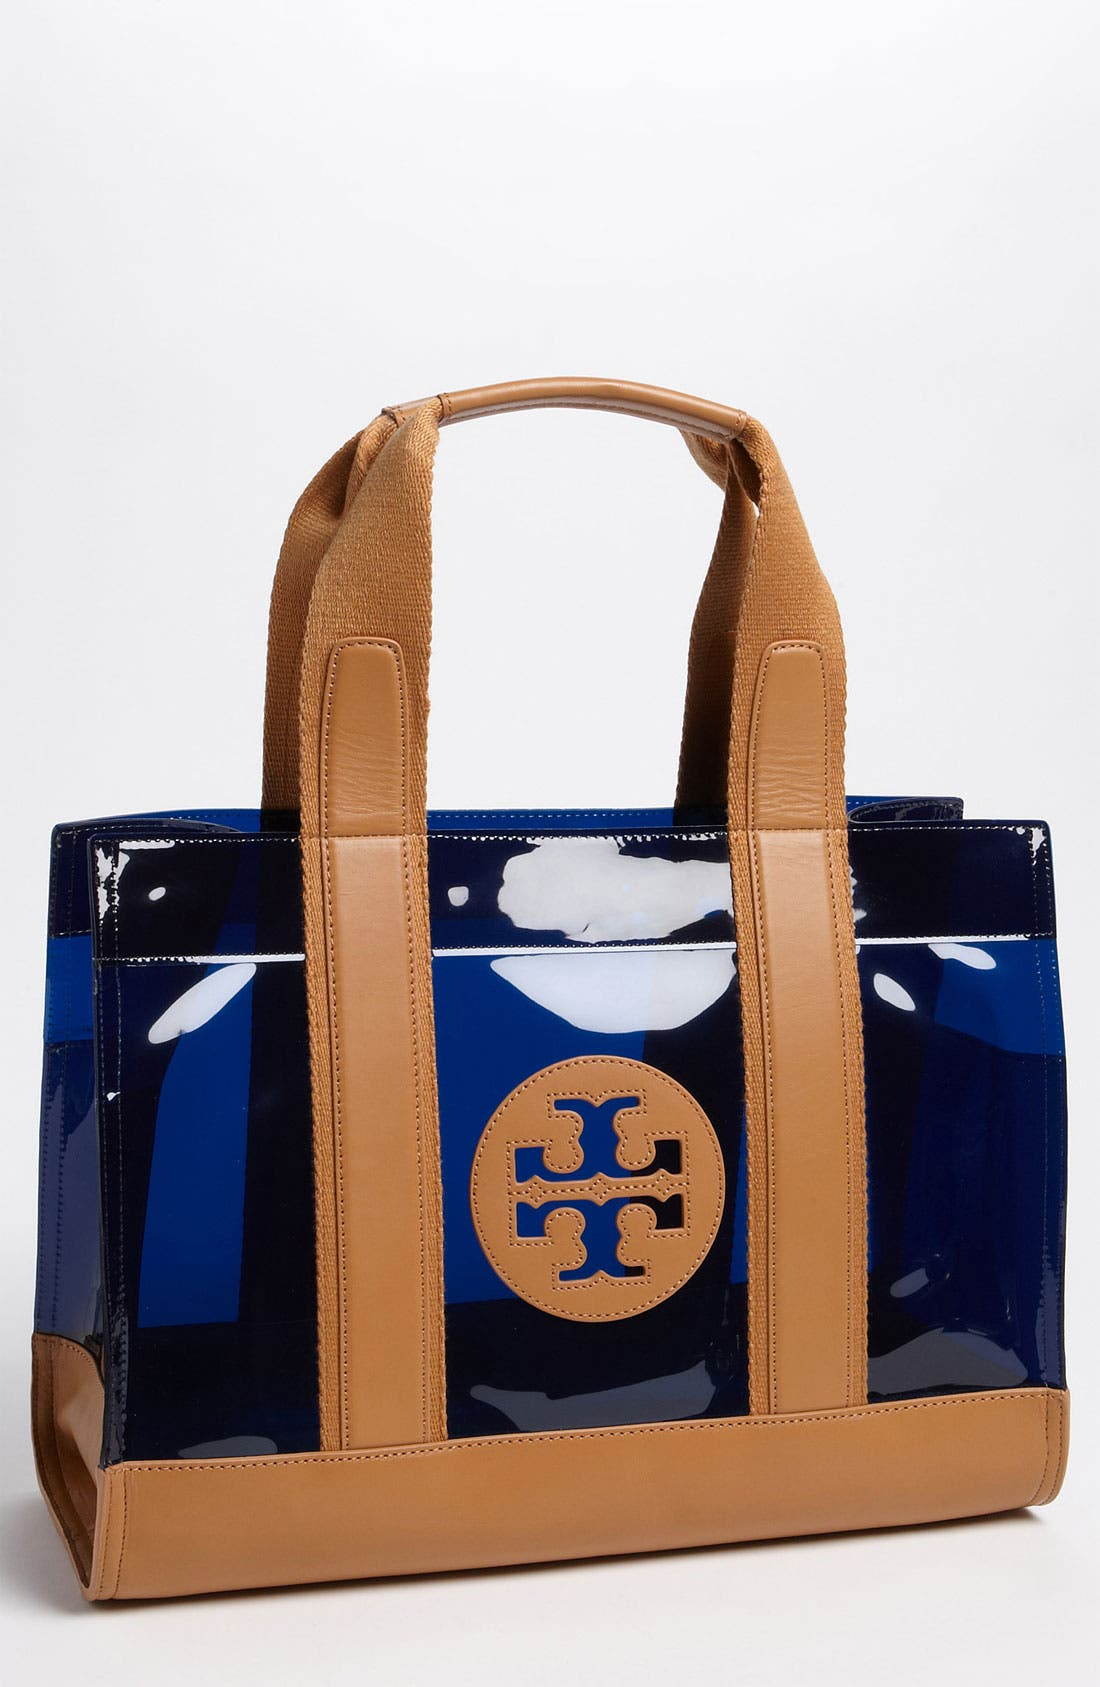 Alternate Image 1 Selected - Tory Burch 'Jesse Tory' Tote